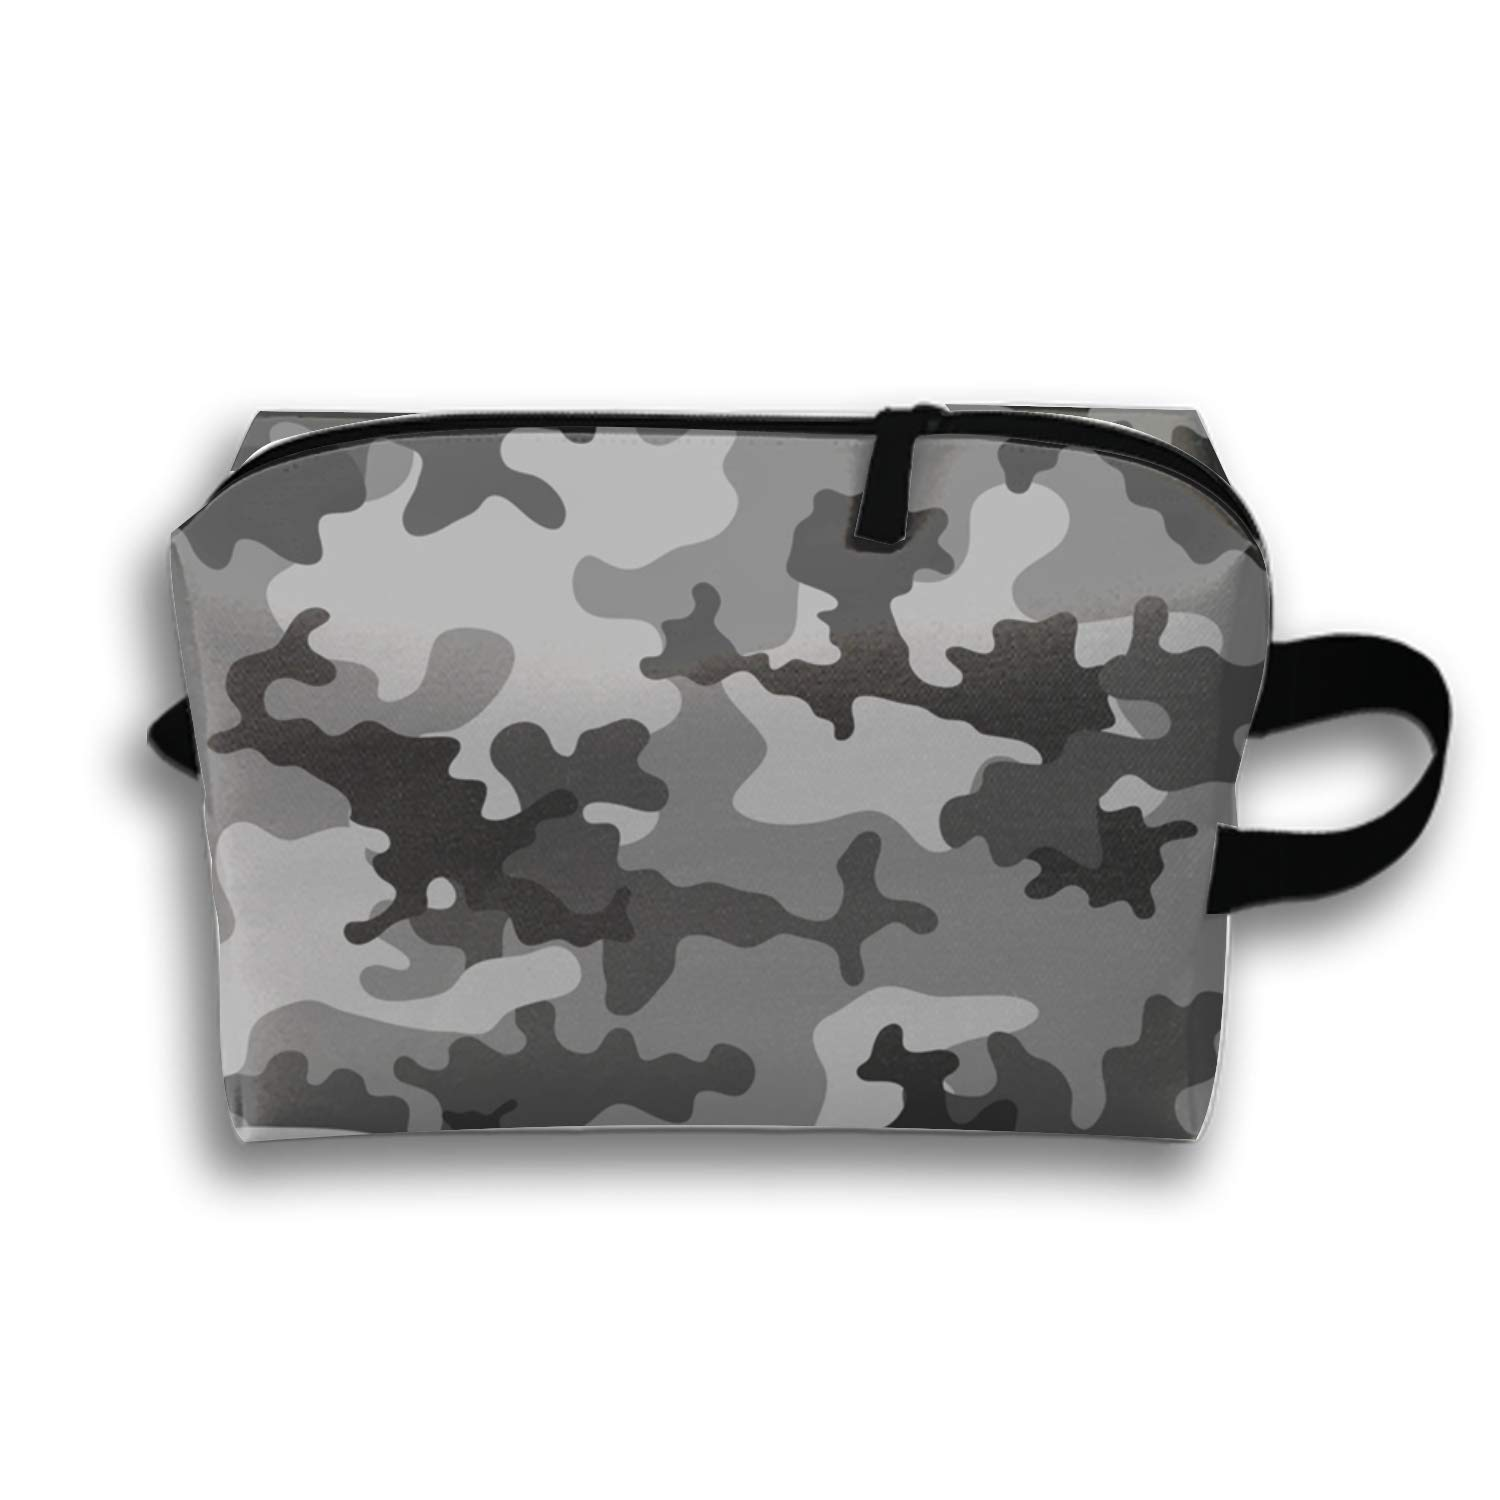 Amazon.com : Make-Up Cosmetic Tote Bag Desert Camouflage Trapezoidal Carry Case : Beauty